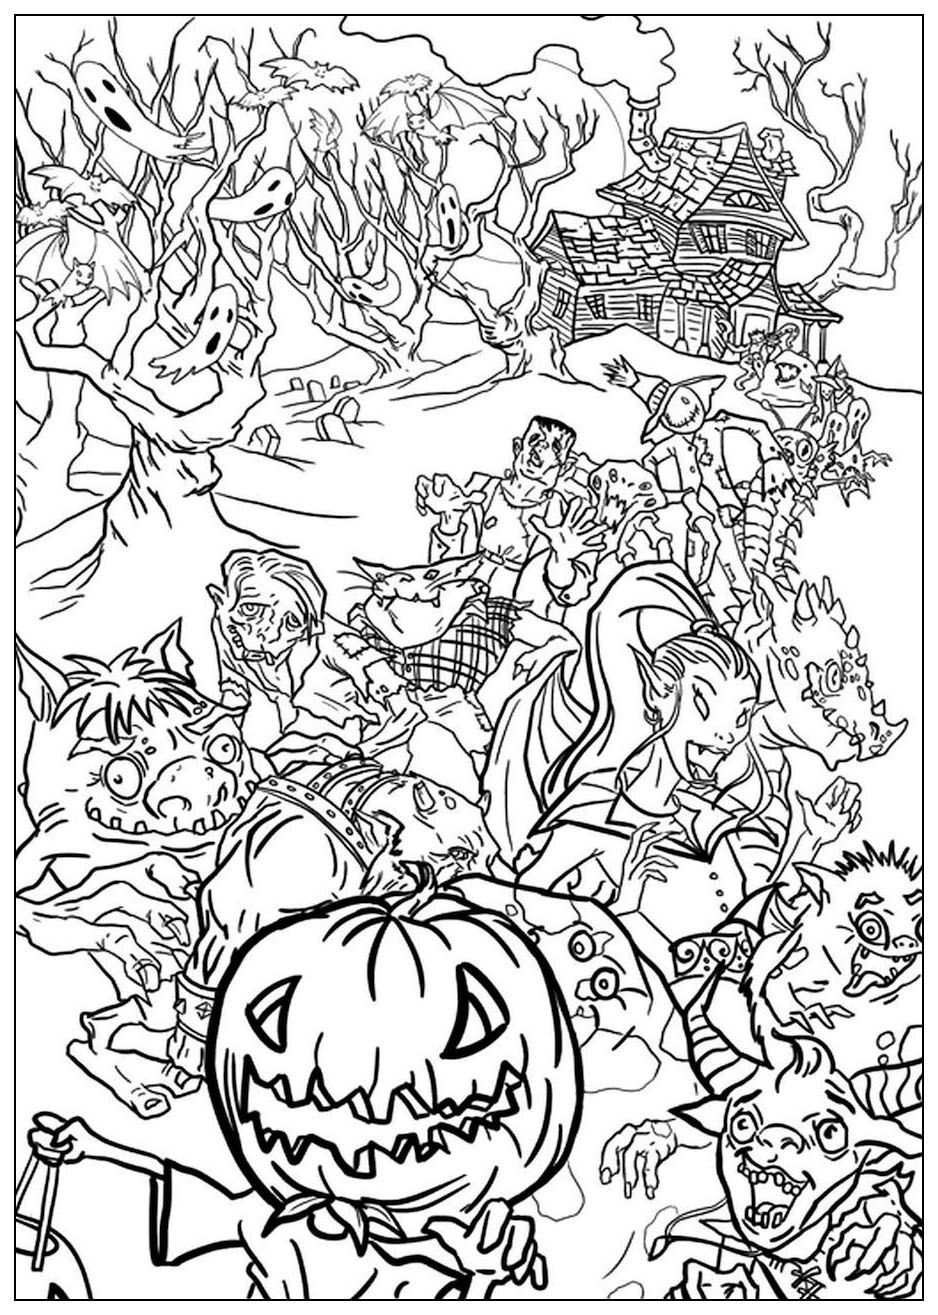 Halloween monsters ready to scary everyone !, From the gallery ...